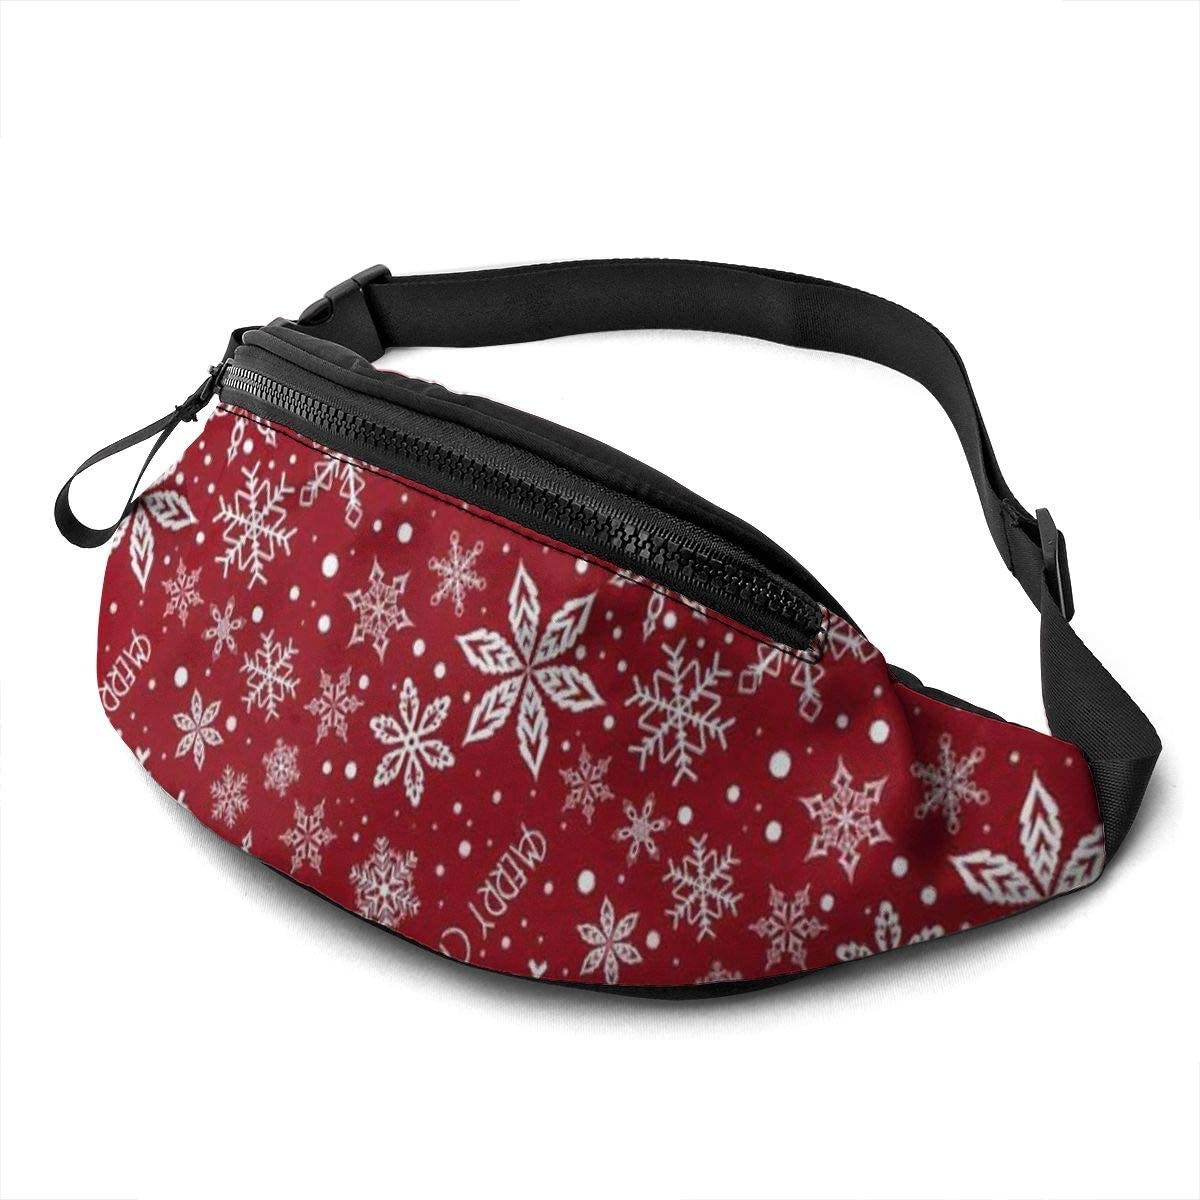 Snowflake Fanny Pack For Men Women Waist Pack Bag With Headphone Jack And Zipper Pockets Adjustable Straps